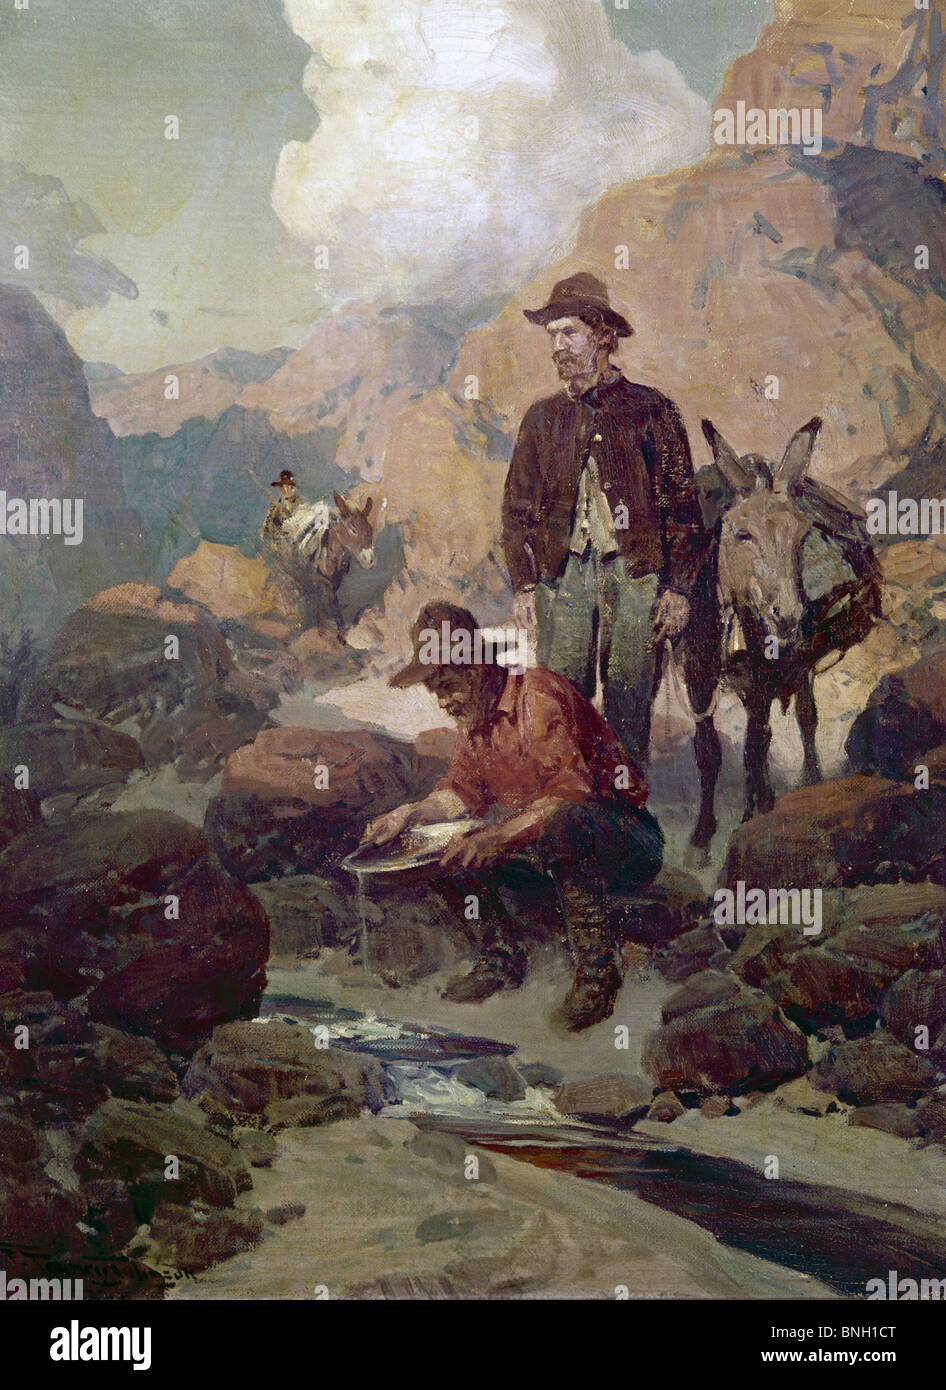 The Miners During the Gold Rush, 1849 in California, Ben Johnson (b.20th C. American) - Stock Image